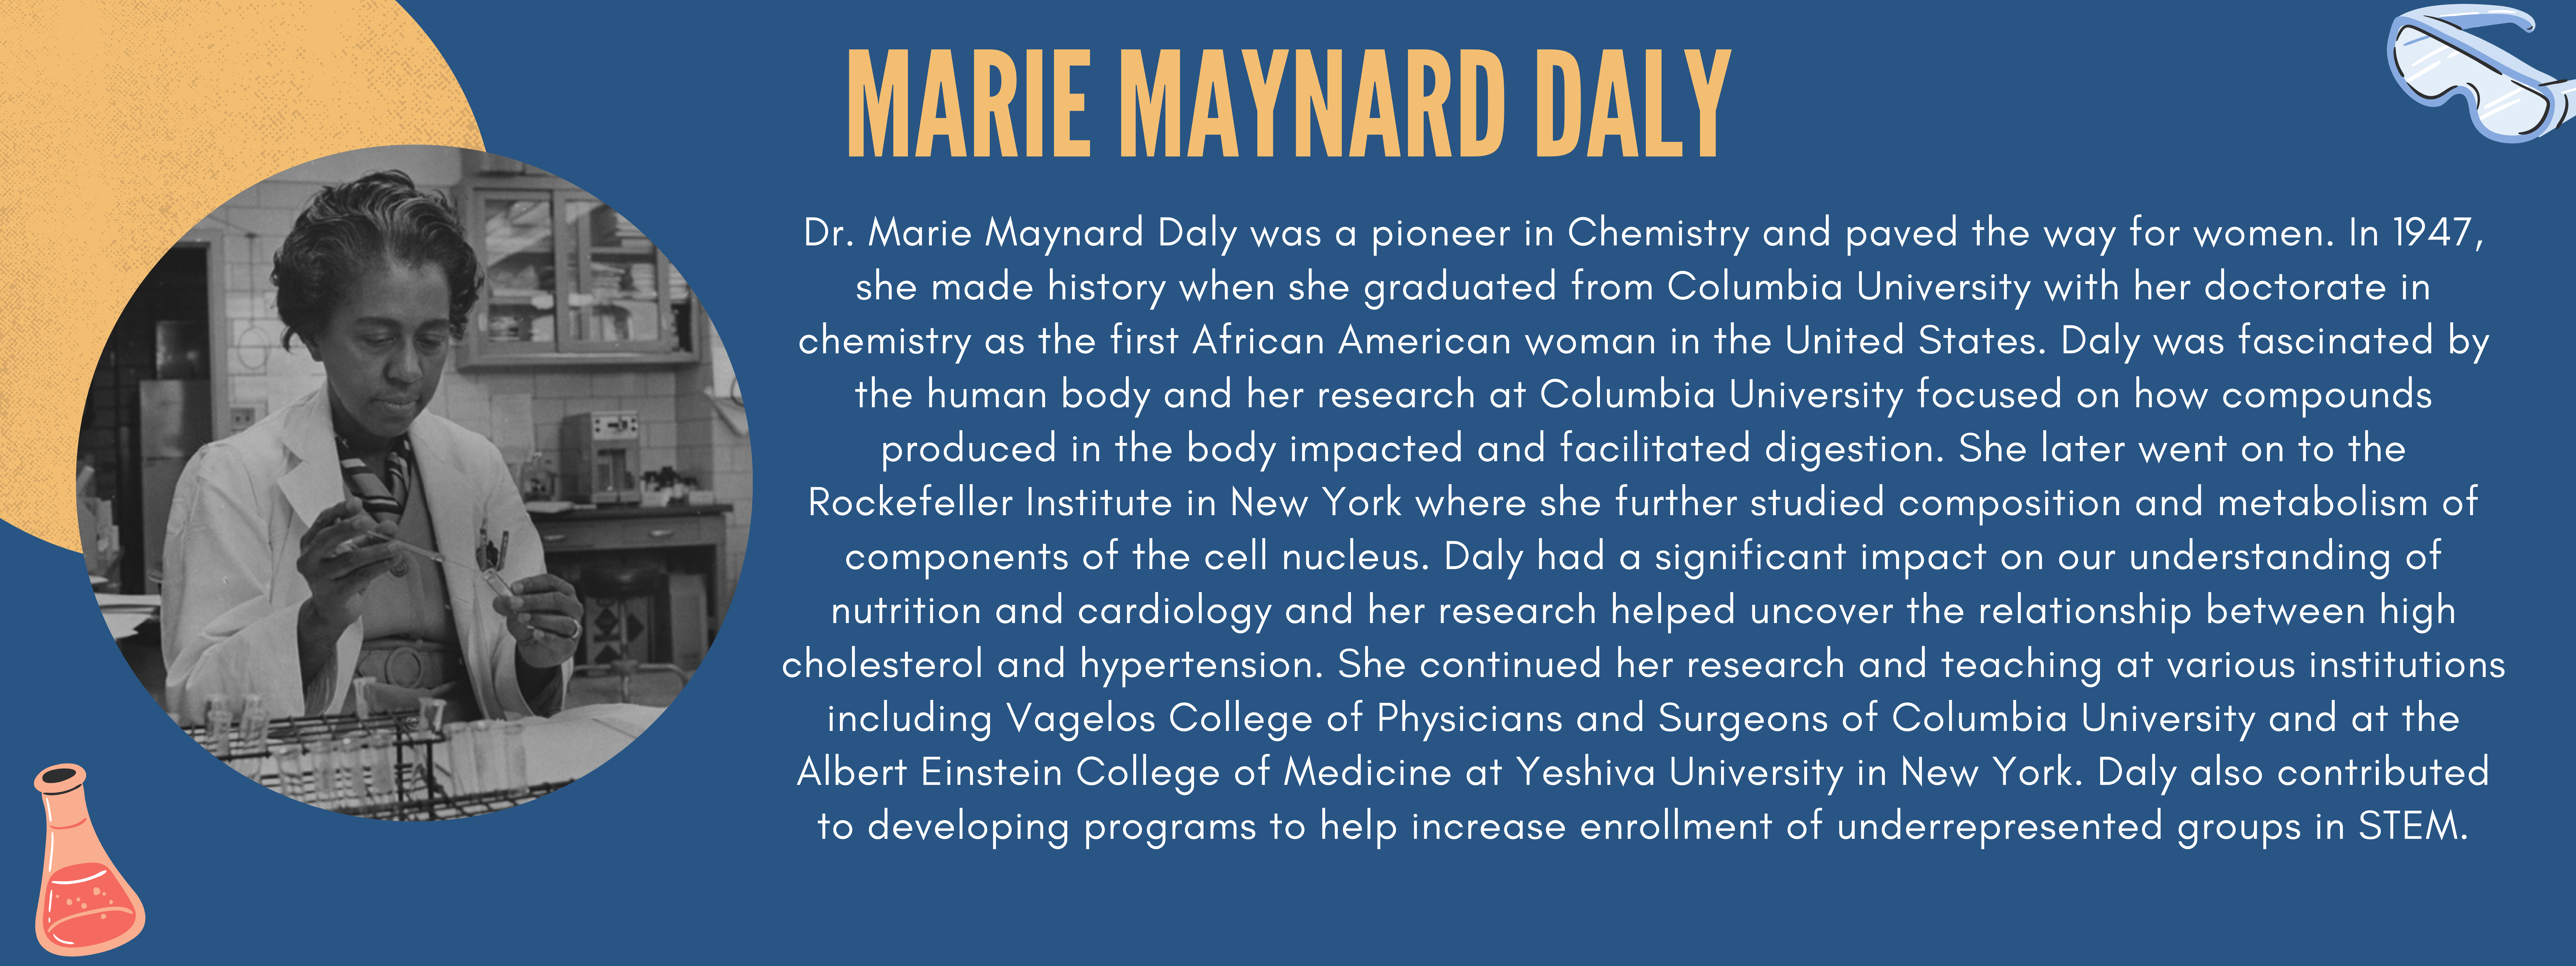 Dr. Marie Maynard Daly was a pioneer in Chemistry and paved the way for women. In 1947, she made history when she graduated from Columbia University with her doctorate in chemistry as the first African American woman in the United States. Daly was fascinated by the human body and her research at Columbia University focused on how compounds produced in the body impacted and facilitated digestion. She later went on to the Rockefeller Institute in New York where she further studied composition and metabolism of components of the cell nucleus. Daly had a significant impact on our understanding of nutrition and cardiology and her research helped uncover the relationship between high cholesterol and hypertension. She continued her research and teaching at various institutions including Vagelos College of Physicians and Surgeons of Columbia University and at the Albert Einstein College of Medicine at Yeshiva University in New York. Daly also contributed to developing programs to help increase enrollment of underrepresented groups in STEM.